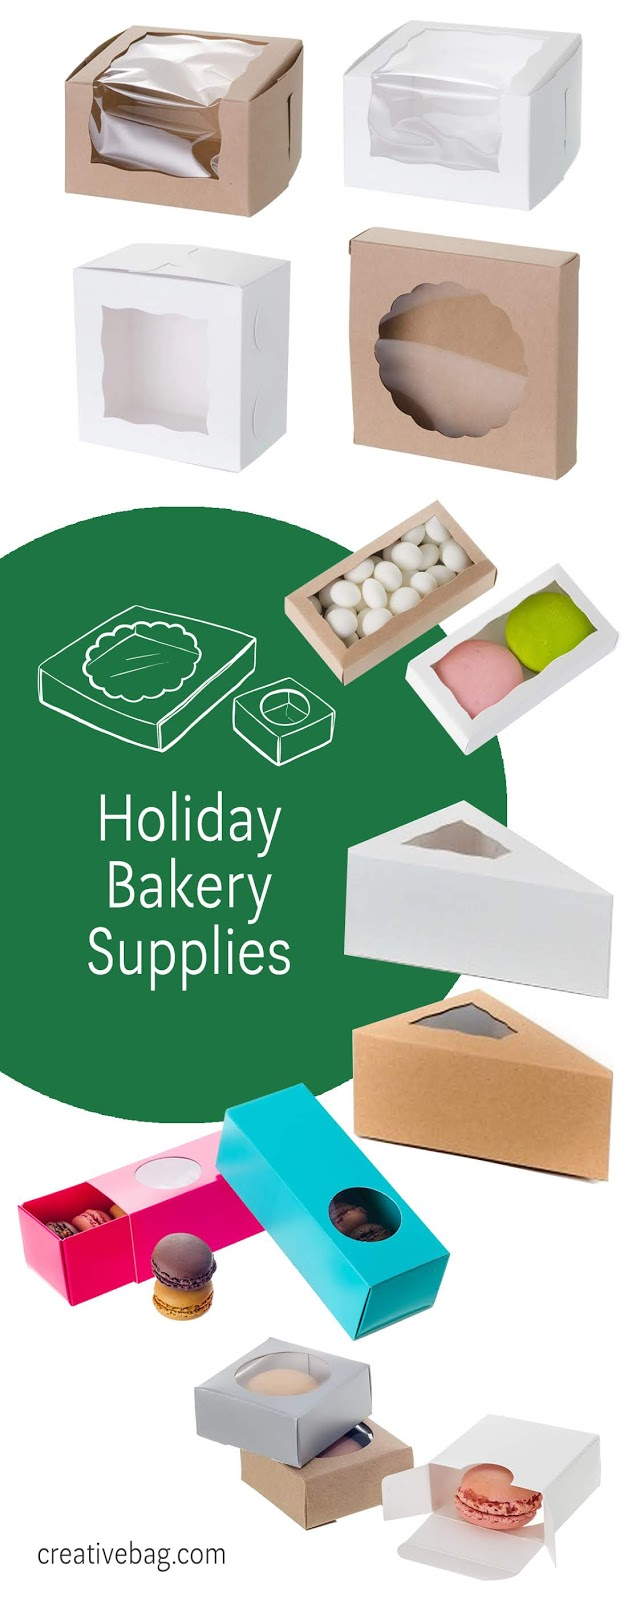 Holiday Baking - Sweet Packaging Inspiration for Gift Giving | creativebag.com